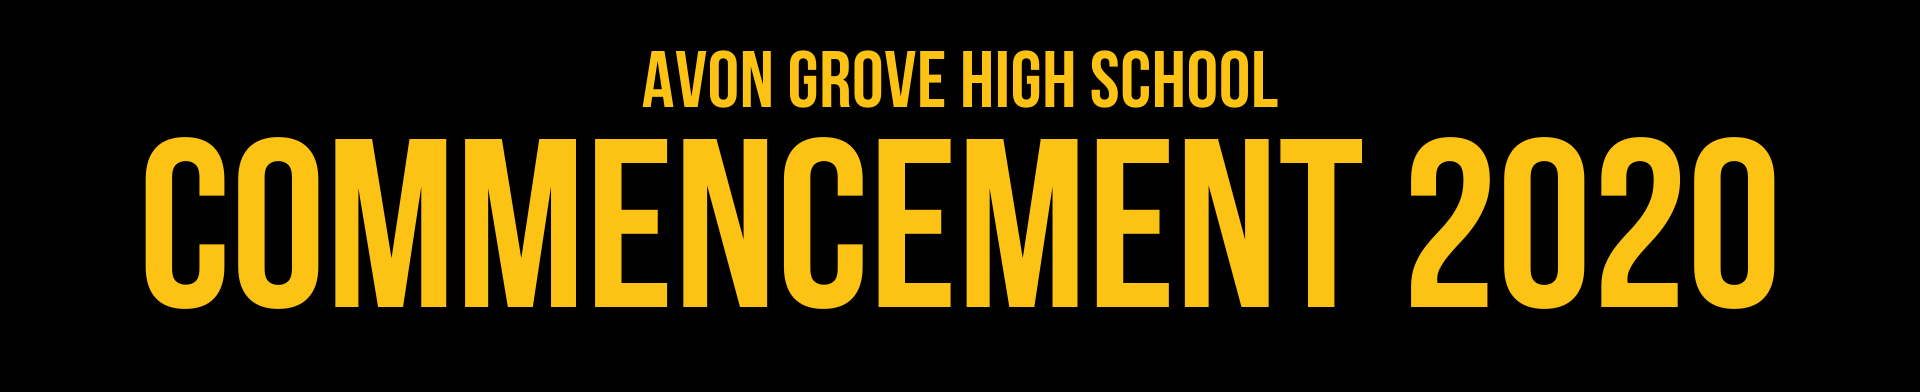 Avon Grove High School, Class of 2020 Banner